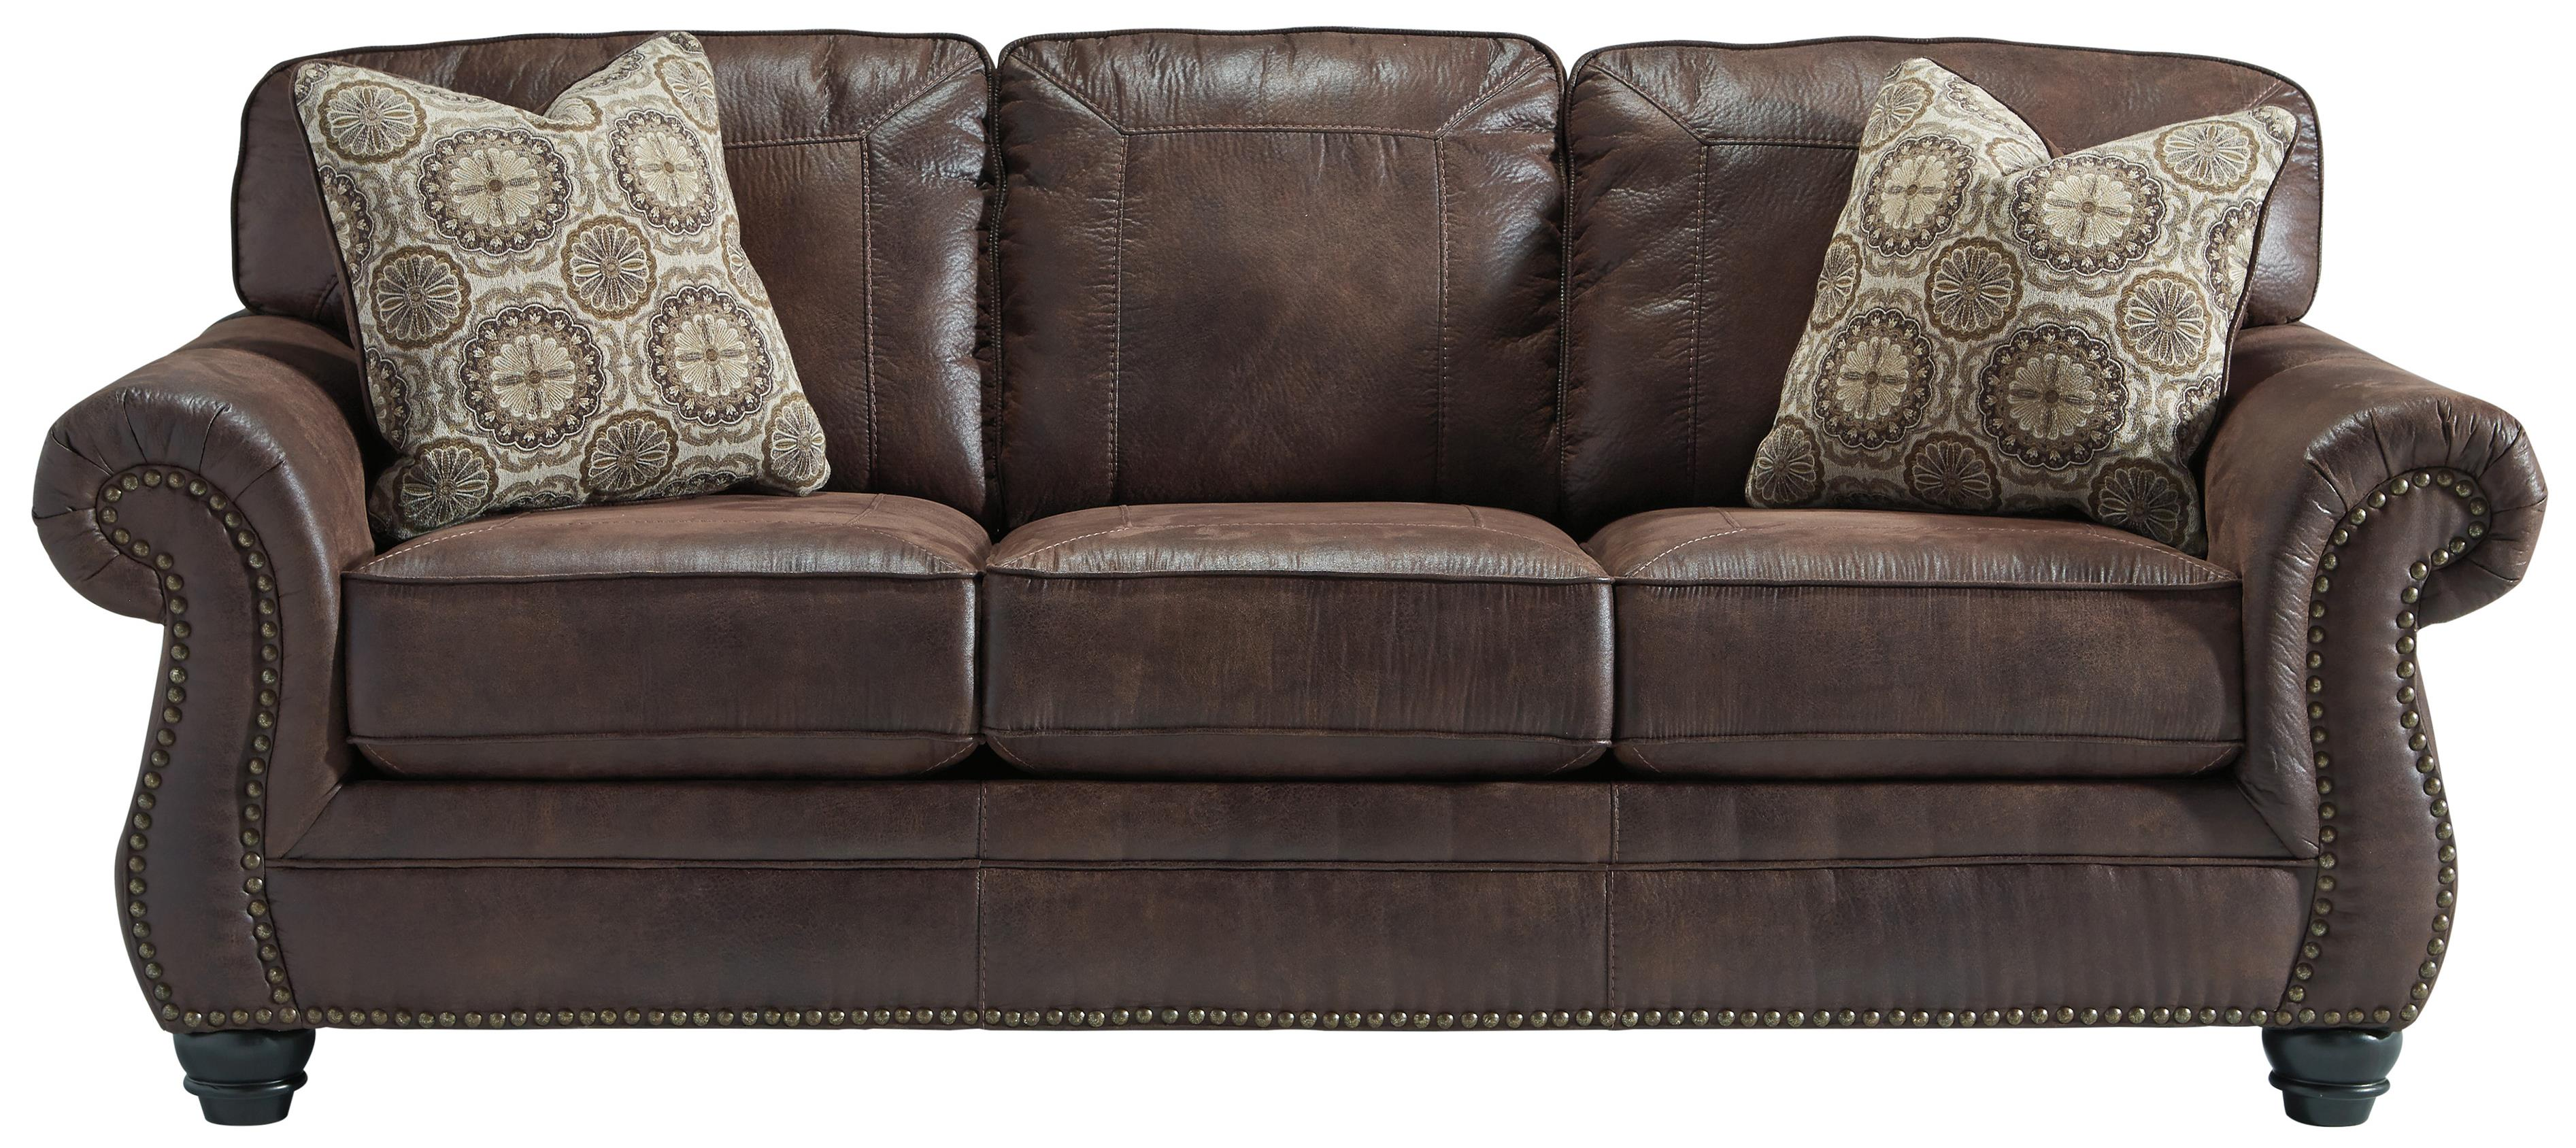 Benchcraft Breville Queen Sofa Sleeper - Item Number: 8000339